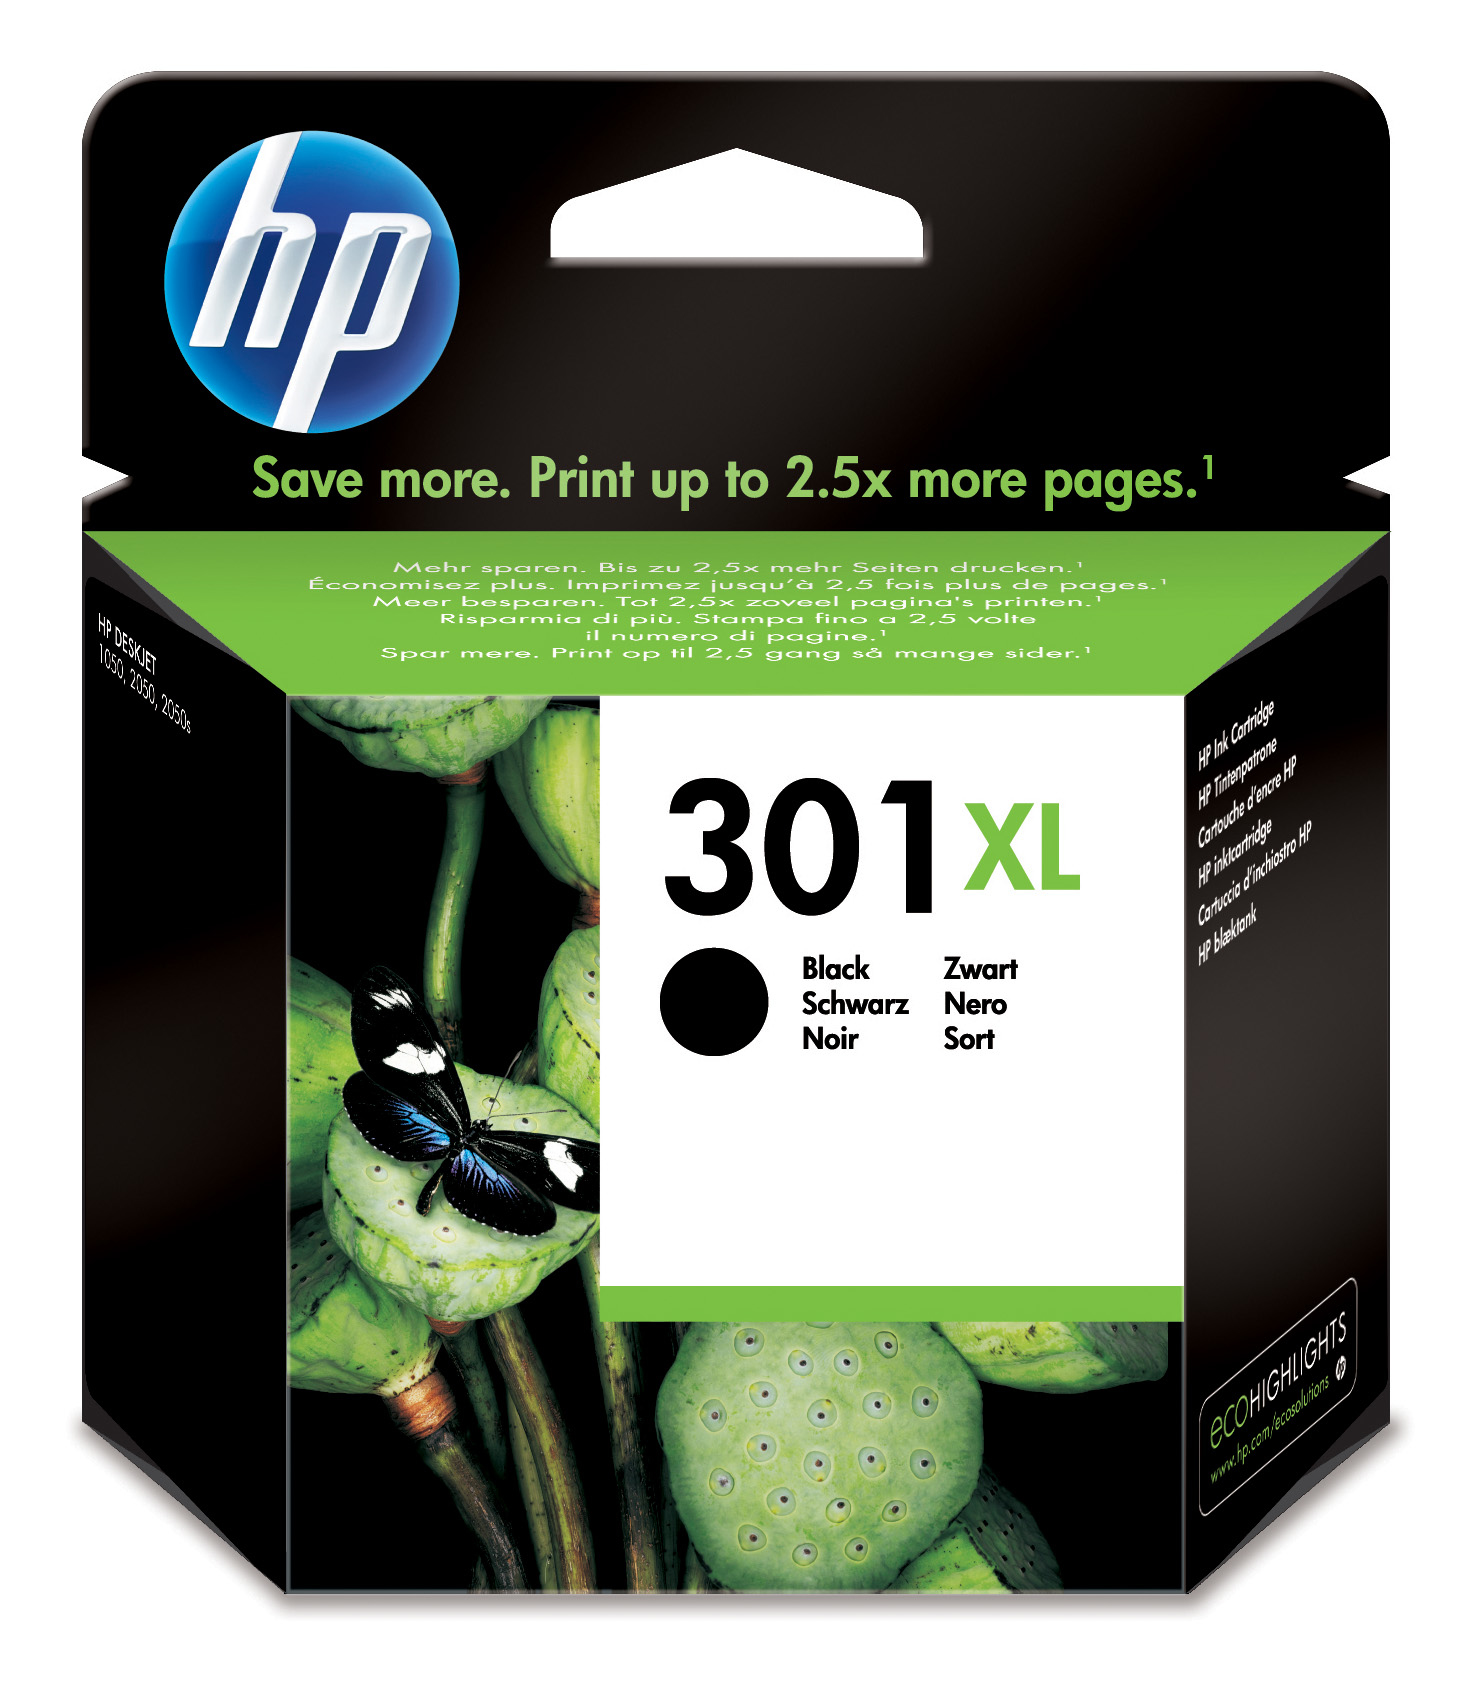 HP 301XL Black Ink Cartridge Original Negro